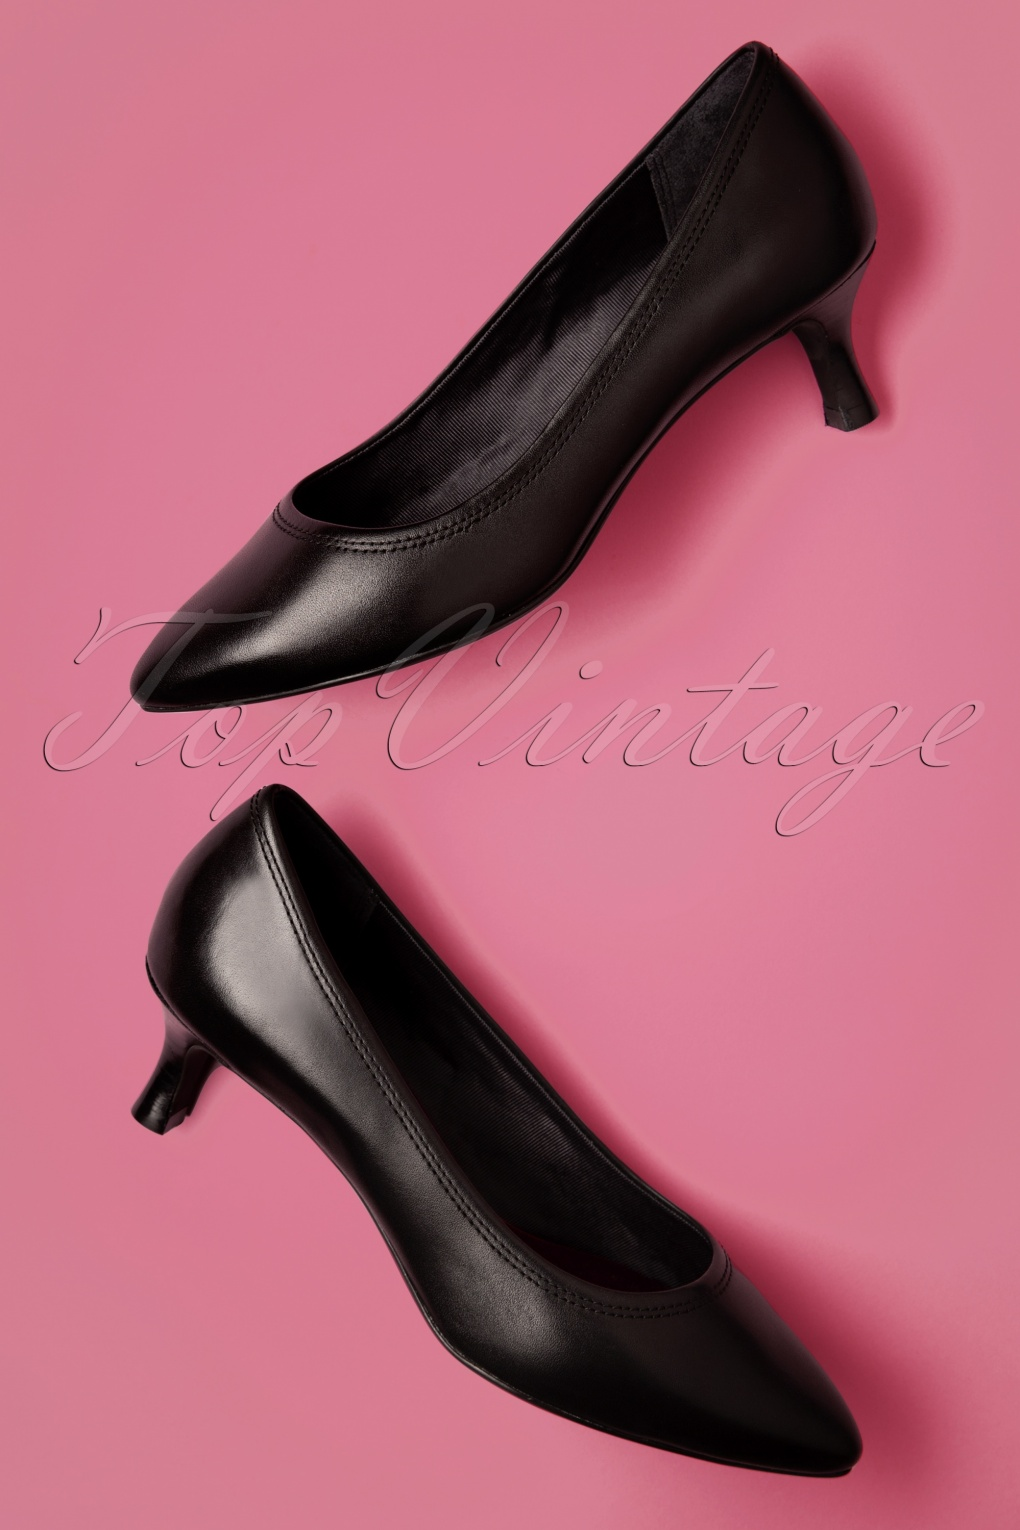 Rockabilly Shoes- Heels, Pumps, Boots, Flats 60s Kaiya Leather Kitten Heel Pumps in Black £94.09 AT vintagedancer.com